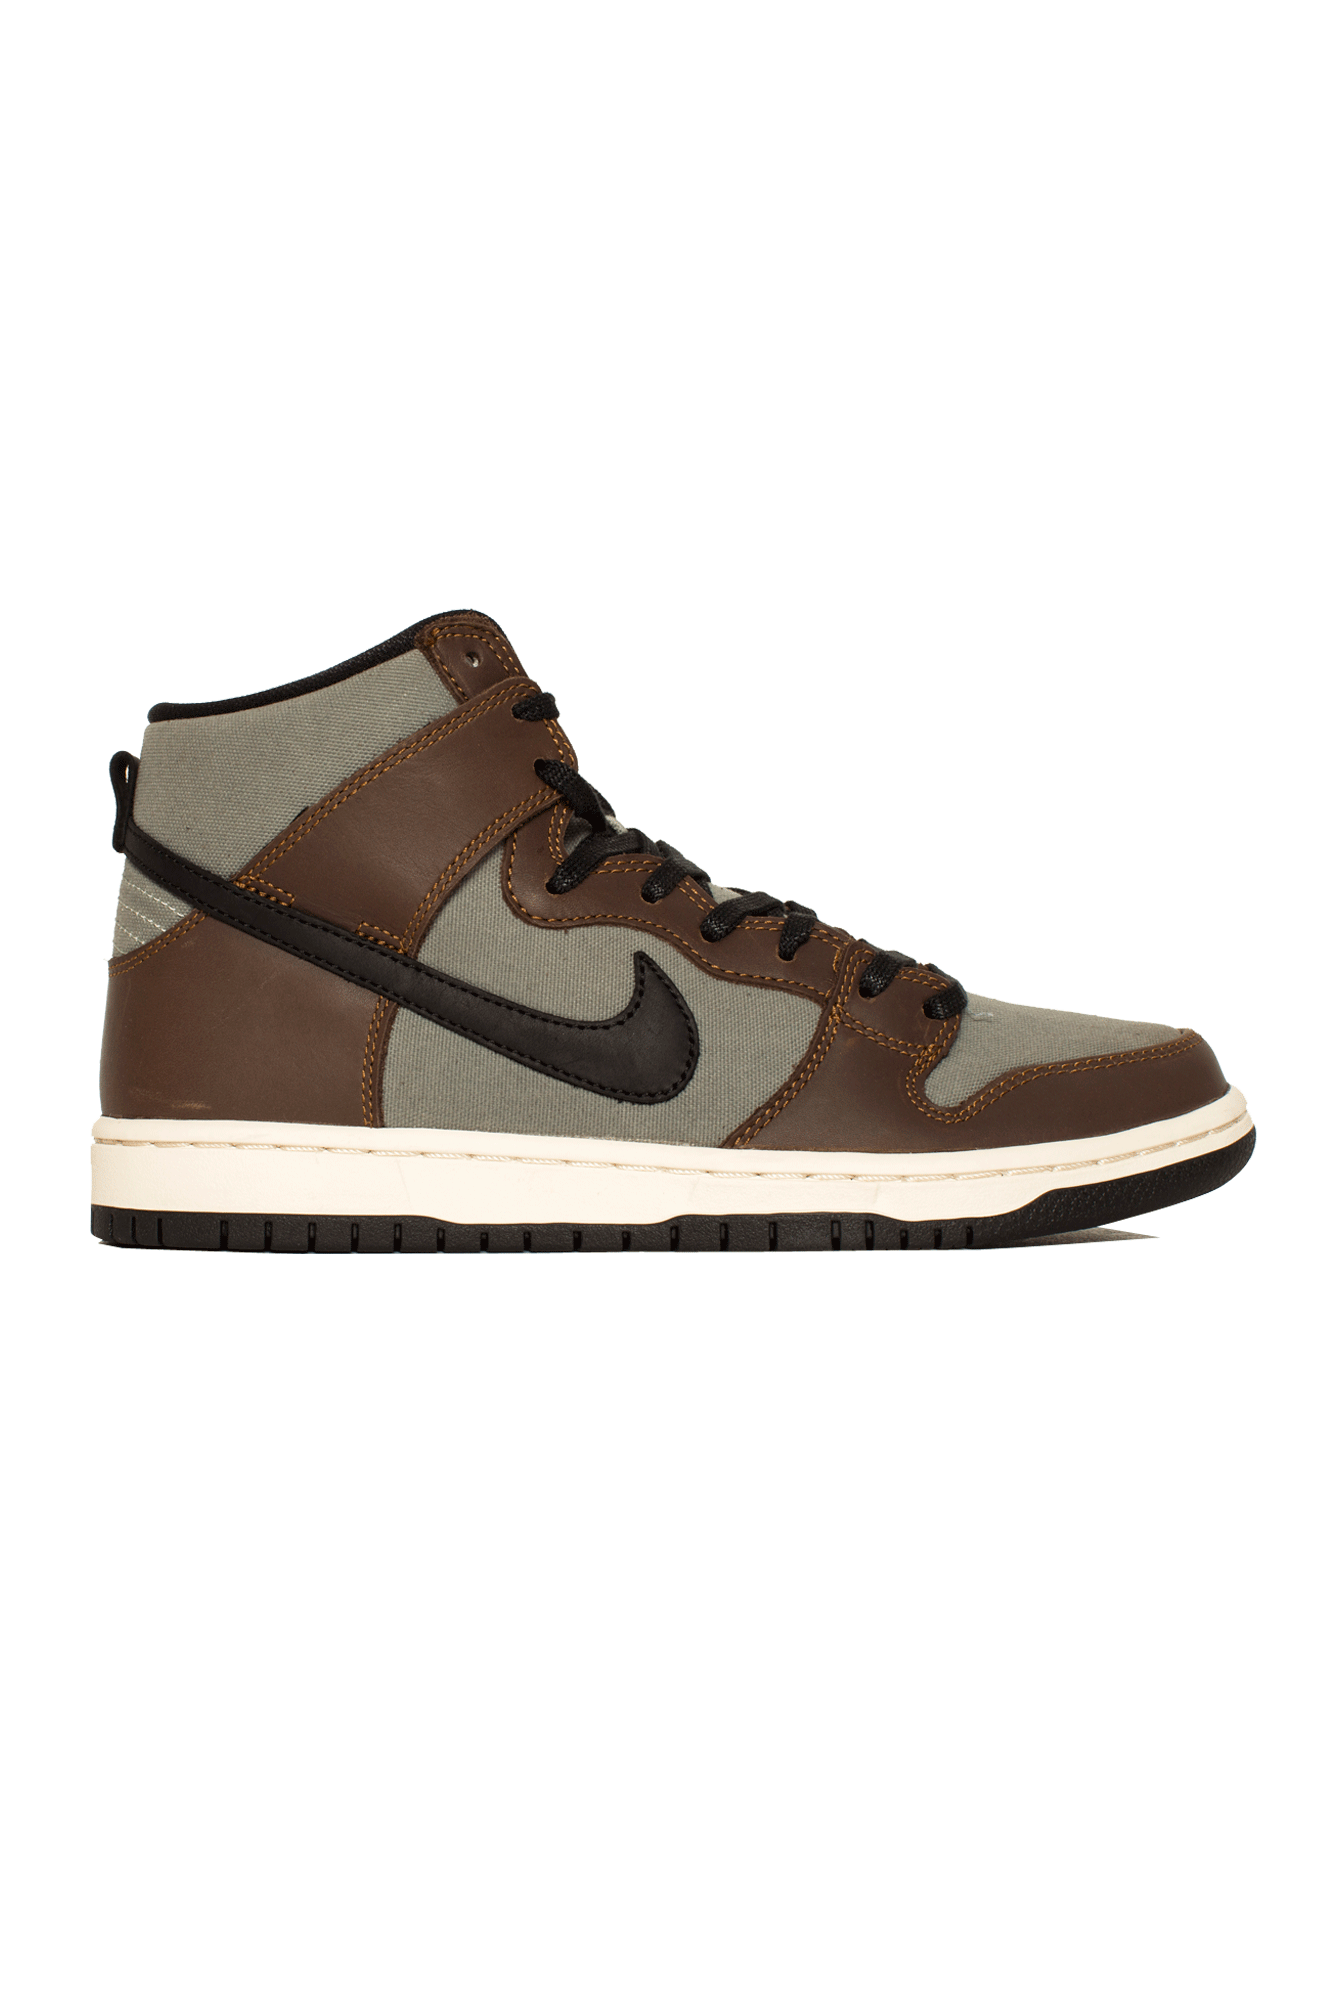 SB Dunk High Pro Brown